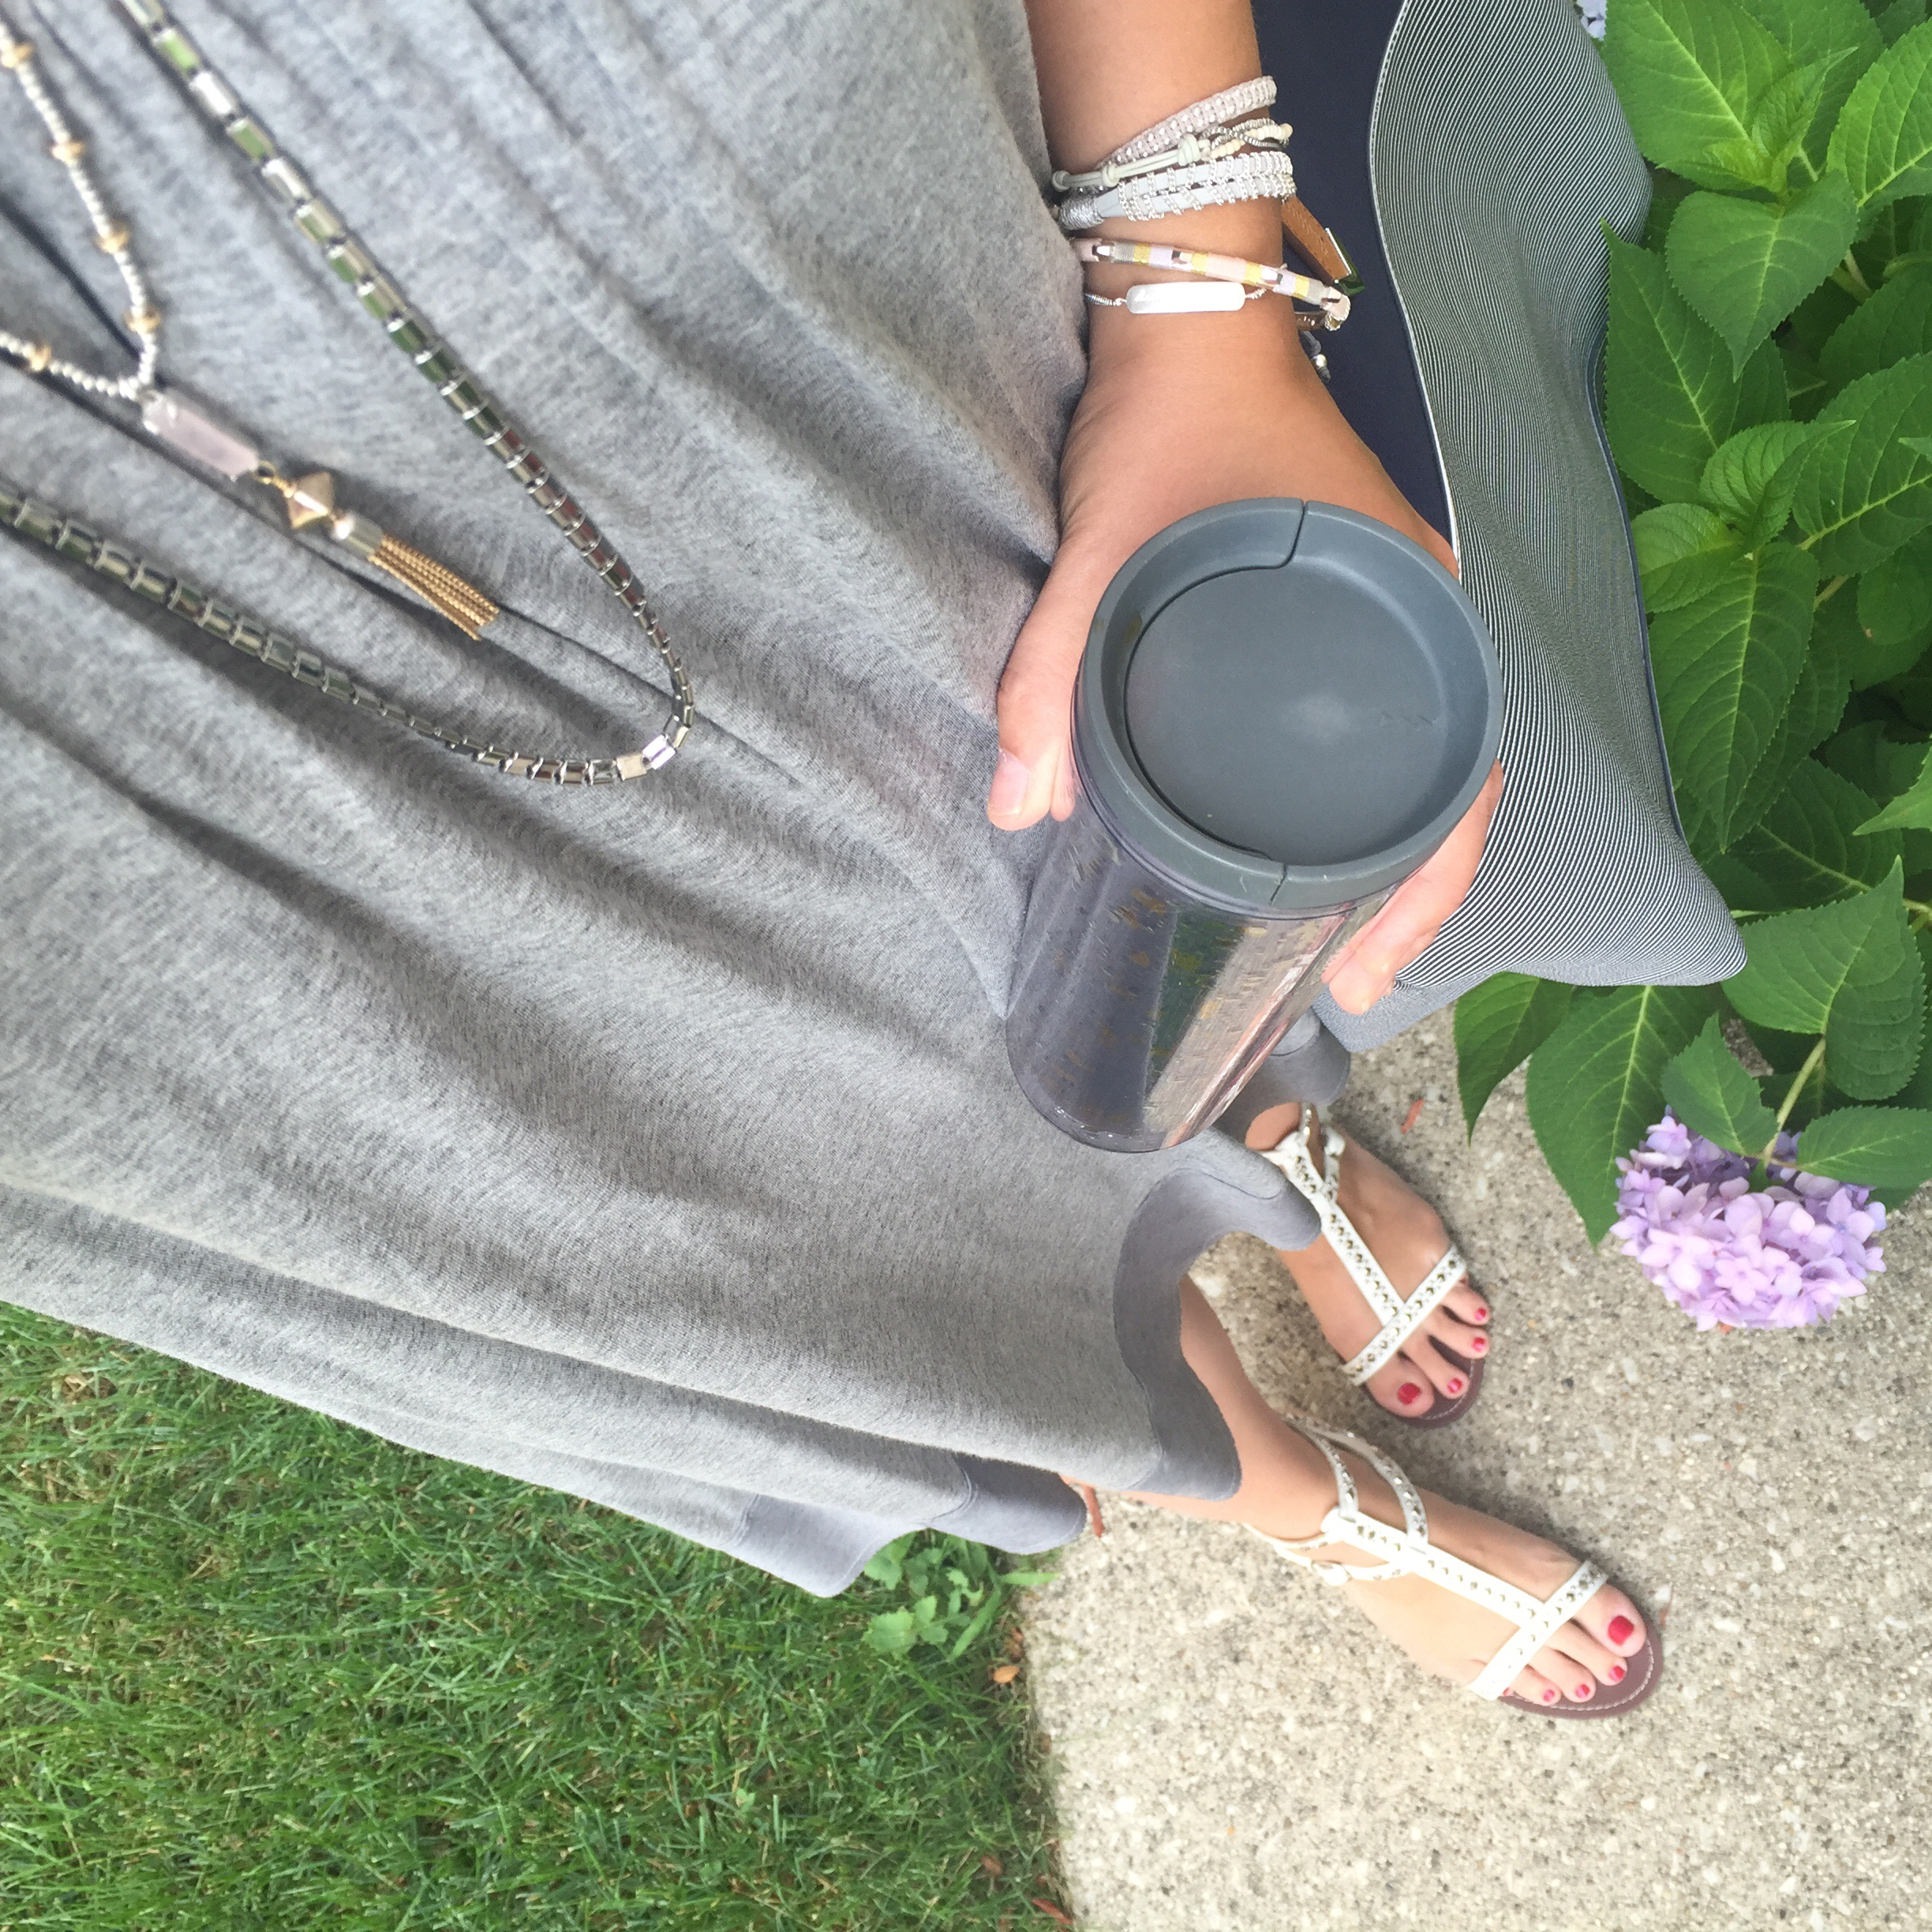 joe fresh swing dress, steve madden studded sandals, stella and dot jewelry, necklace, bracelet, coffee, starbucks, thrift, thrifted, thrift find